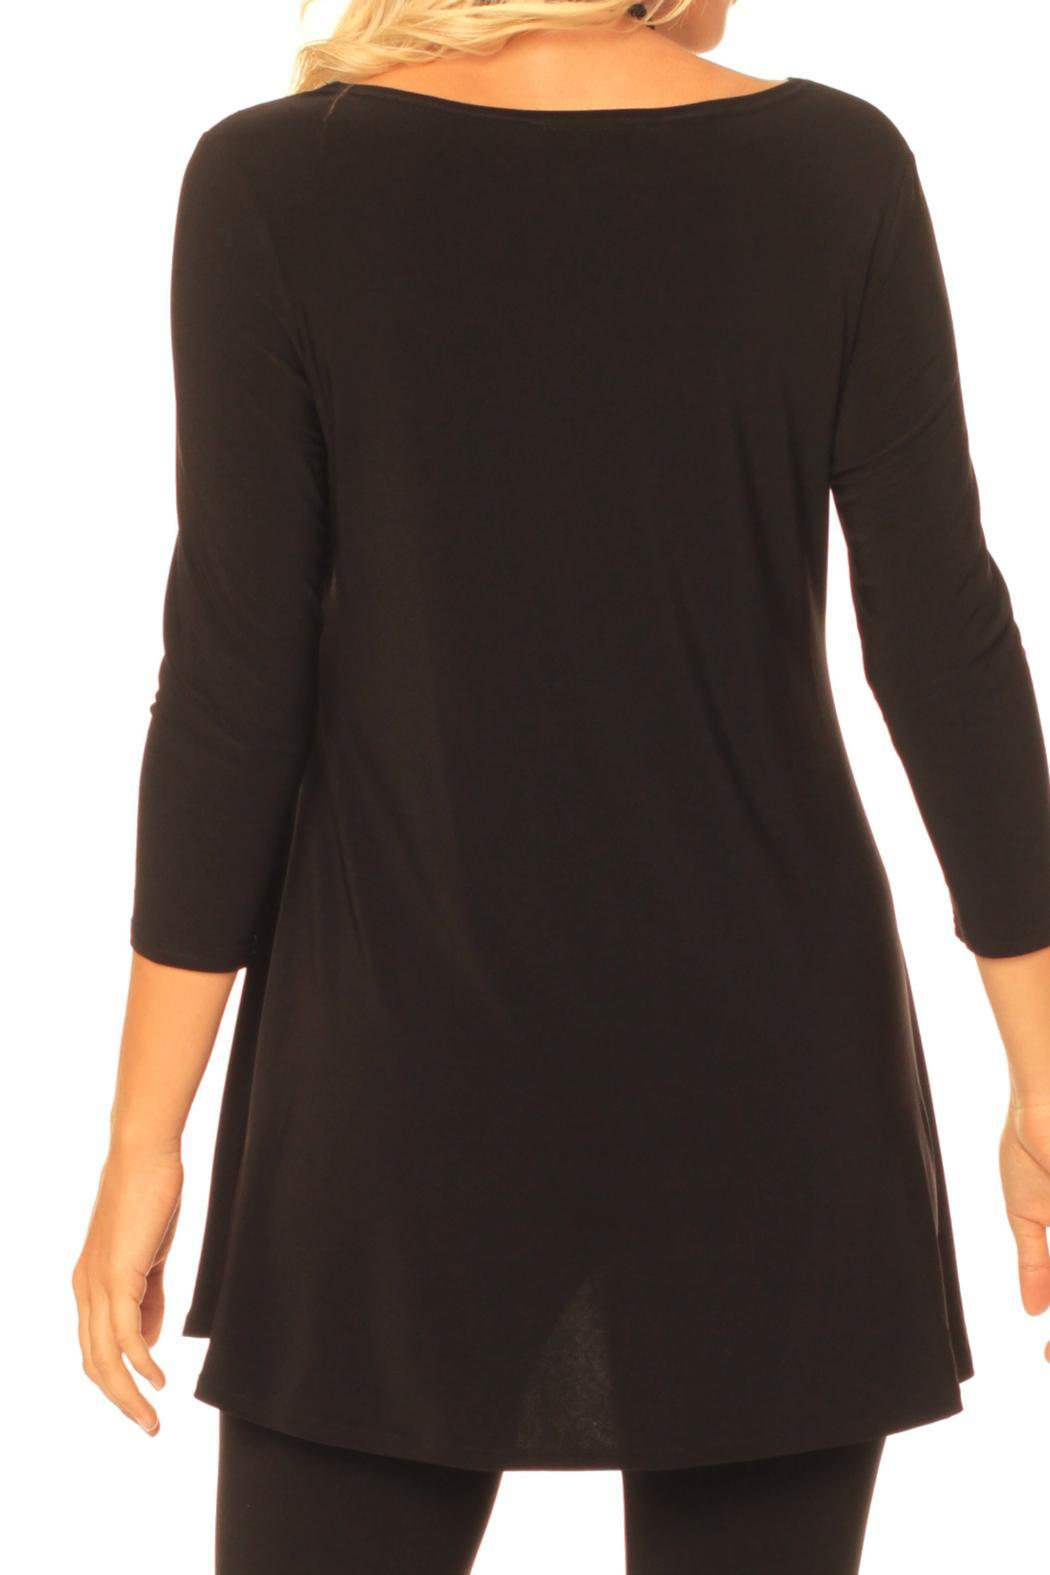 Alisha D Round Neck Tunic - Side Cropped Image